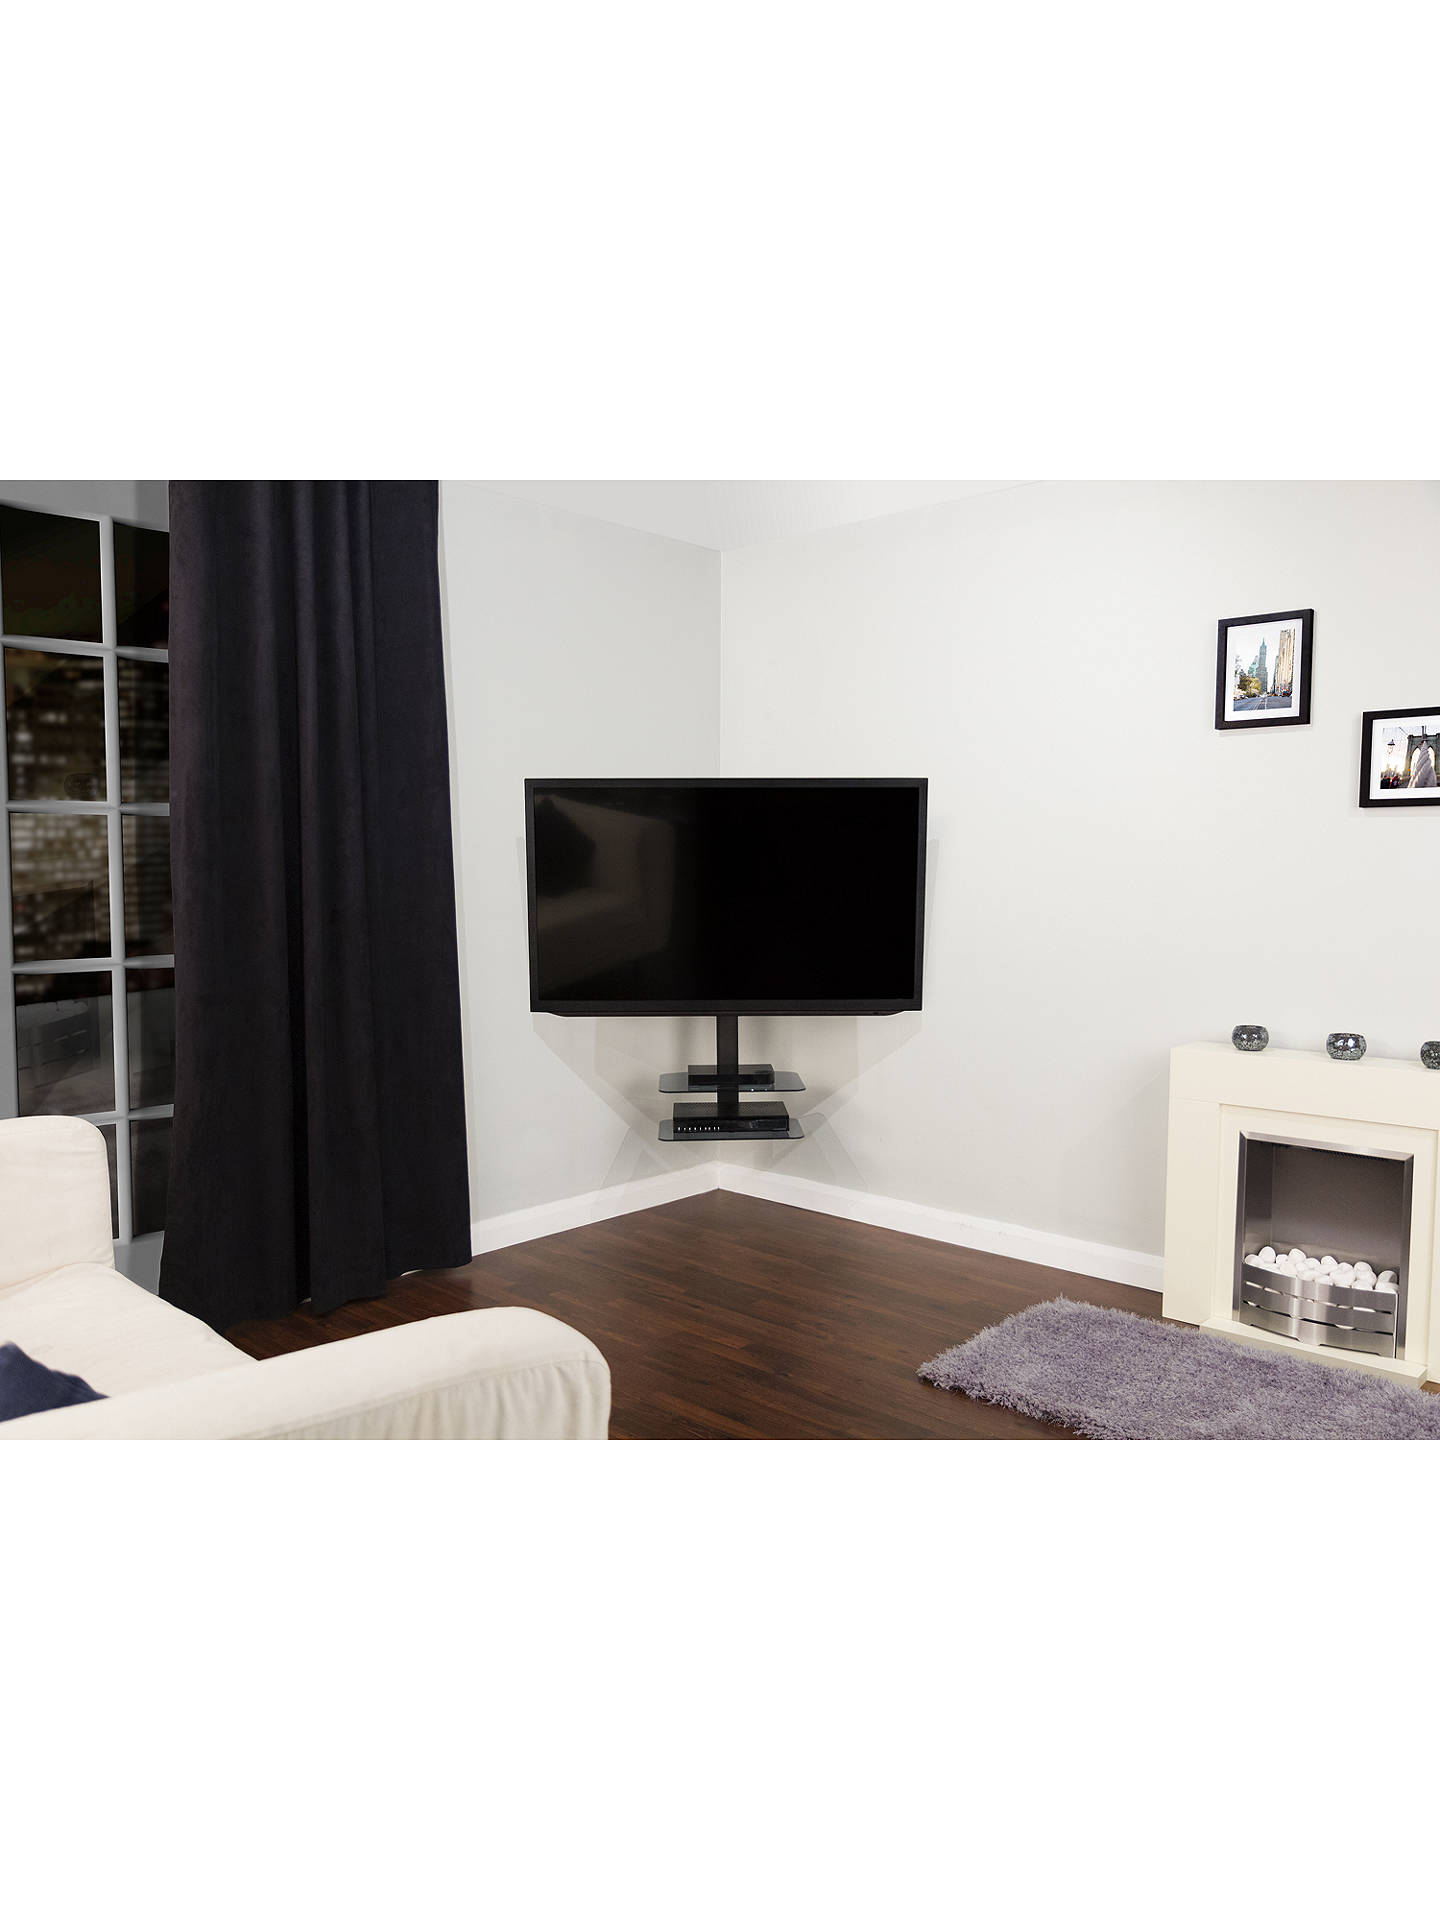 Avf Zsl5502 Multi Position Corner Wall Mount For Tvs From 32 70 At